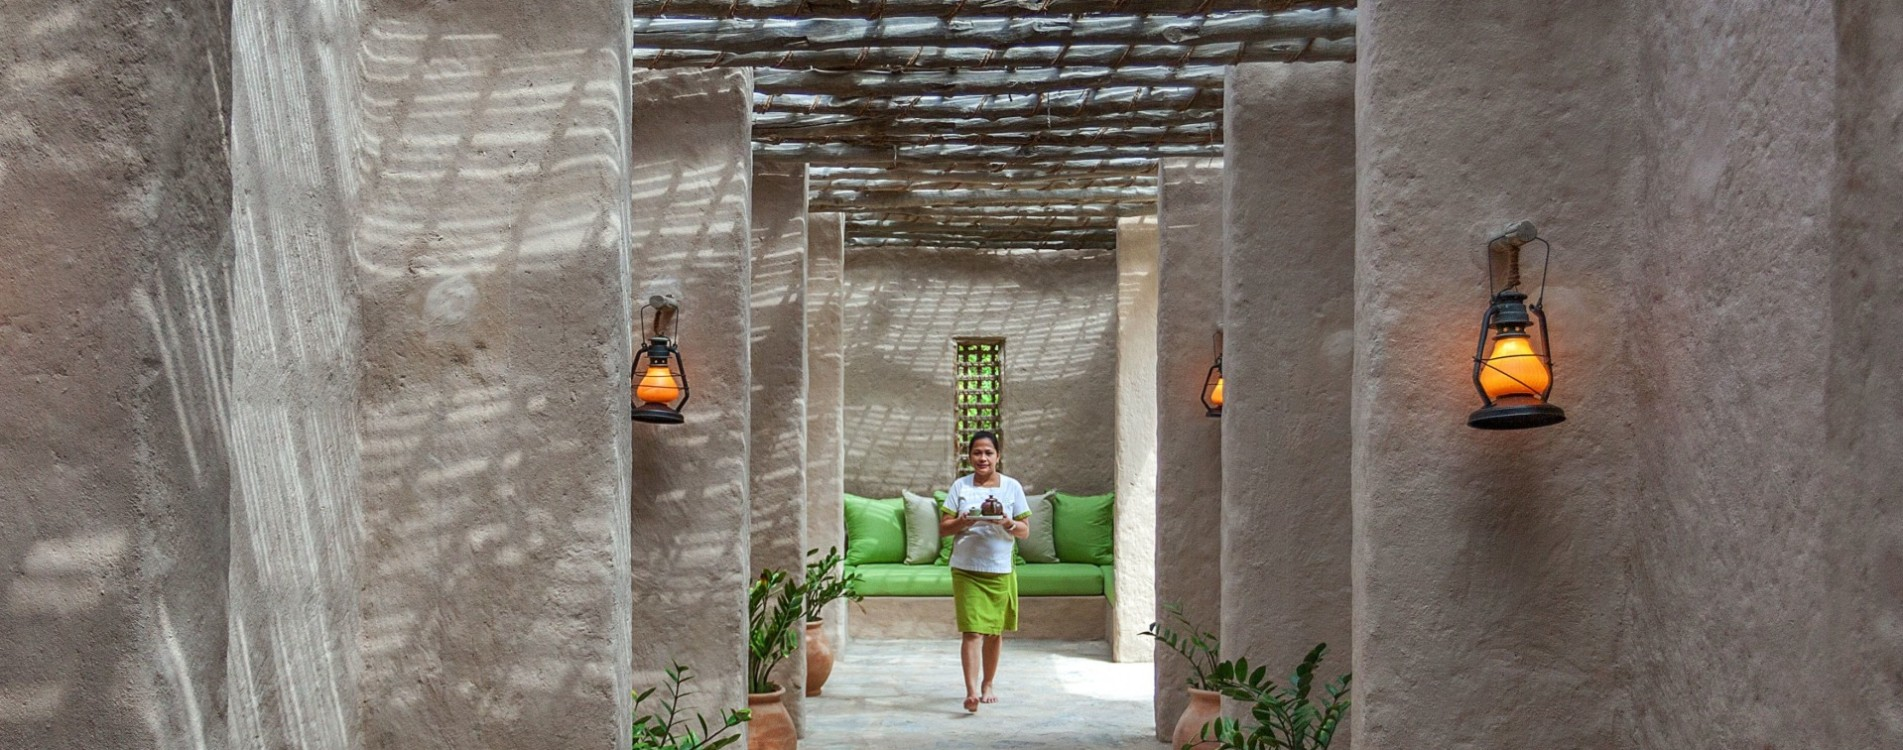 Six-Senses-Zighy-Bay-Spa-Eingang-Flur-Oman.jpg